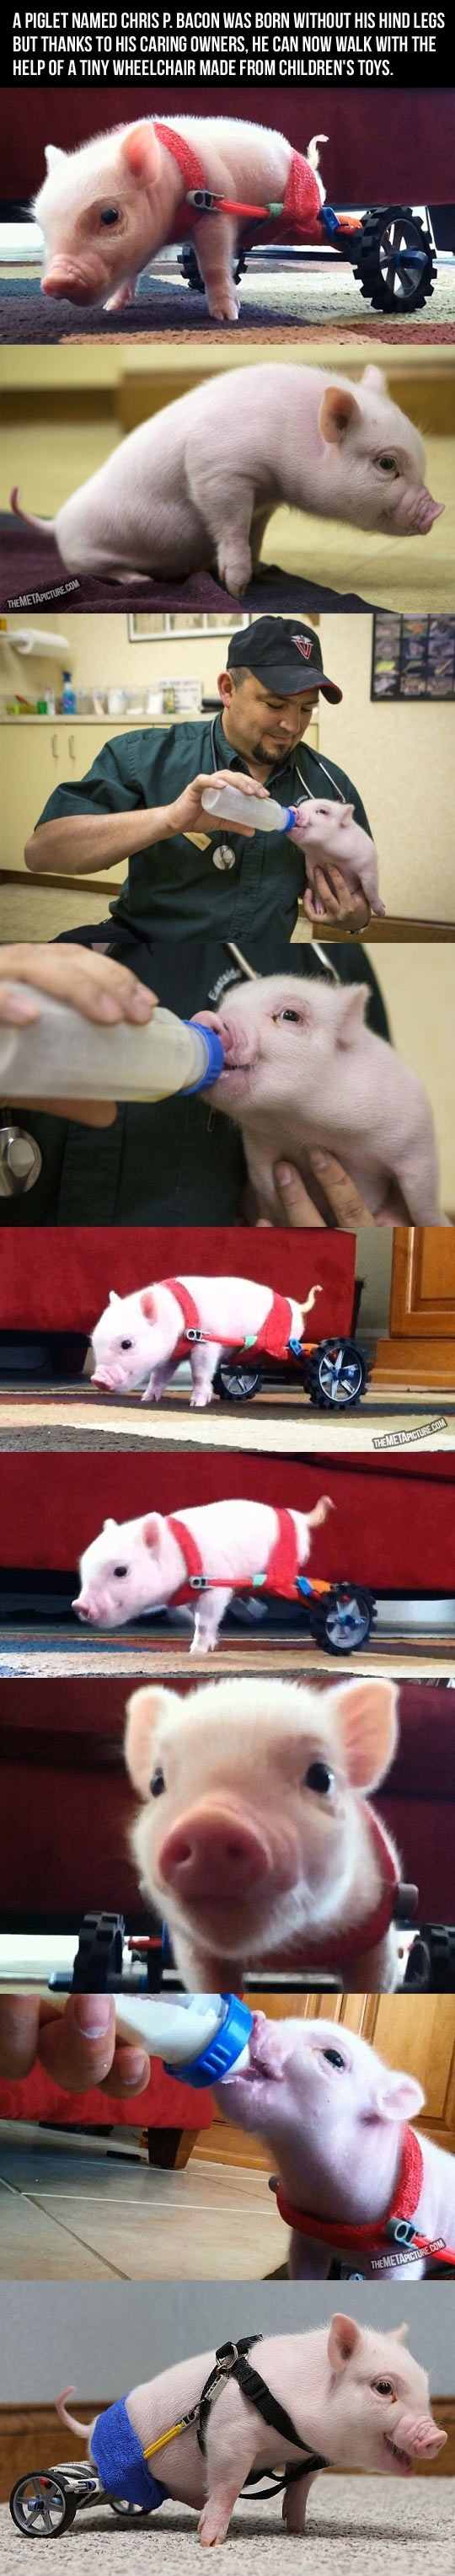 Chris P Bacon Pig on Wheels